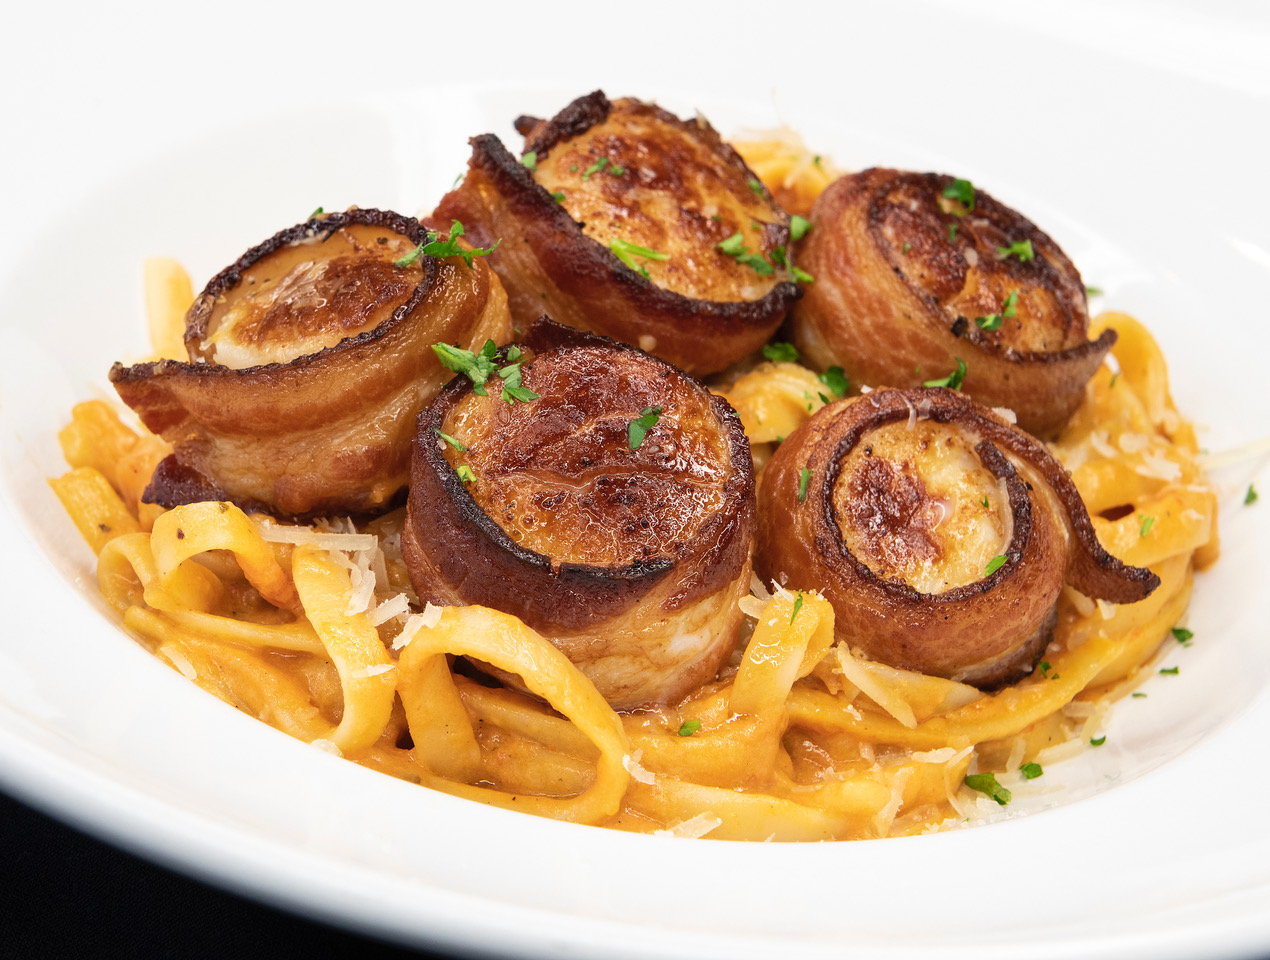 Bacon Wrapped Scallops. Fettuccine and Vodka Sauce